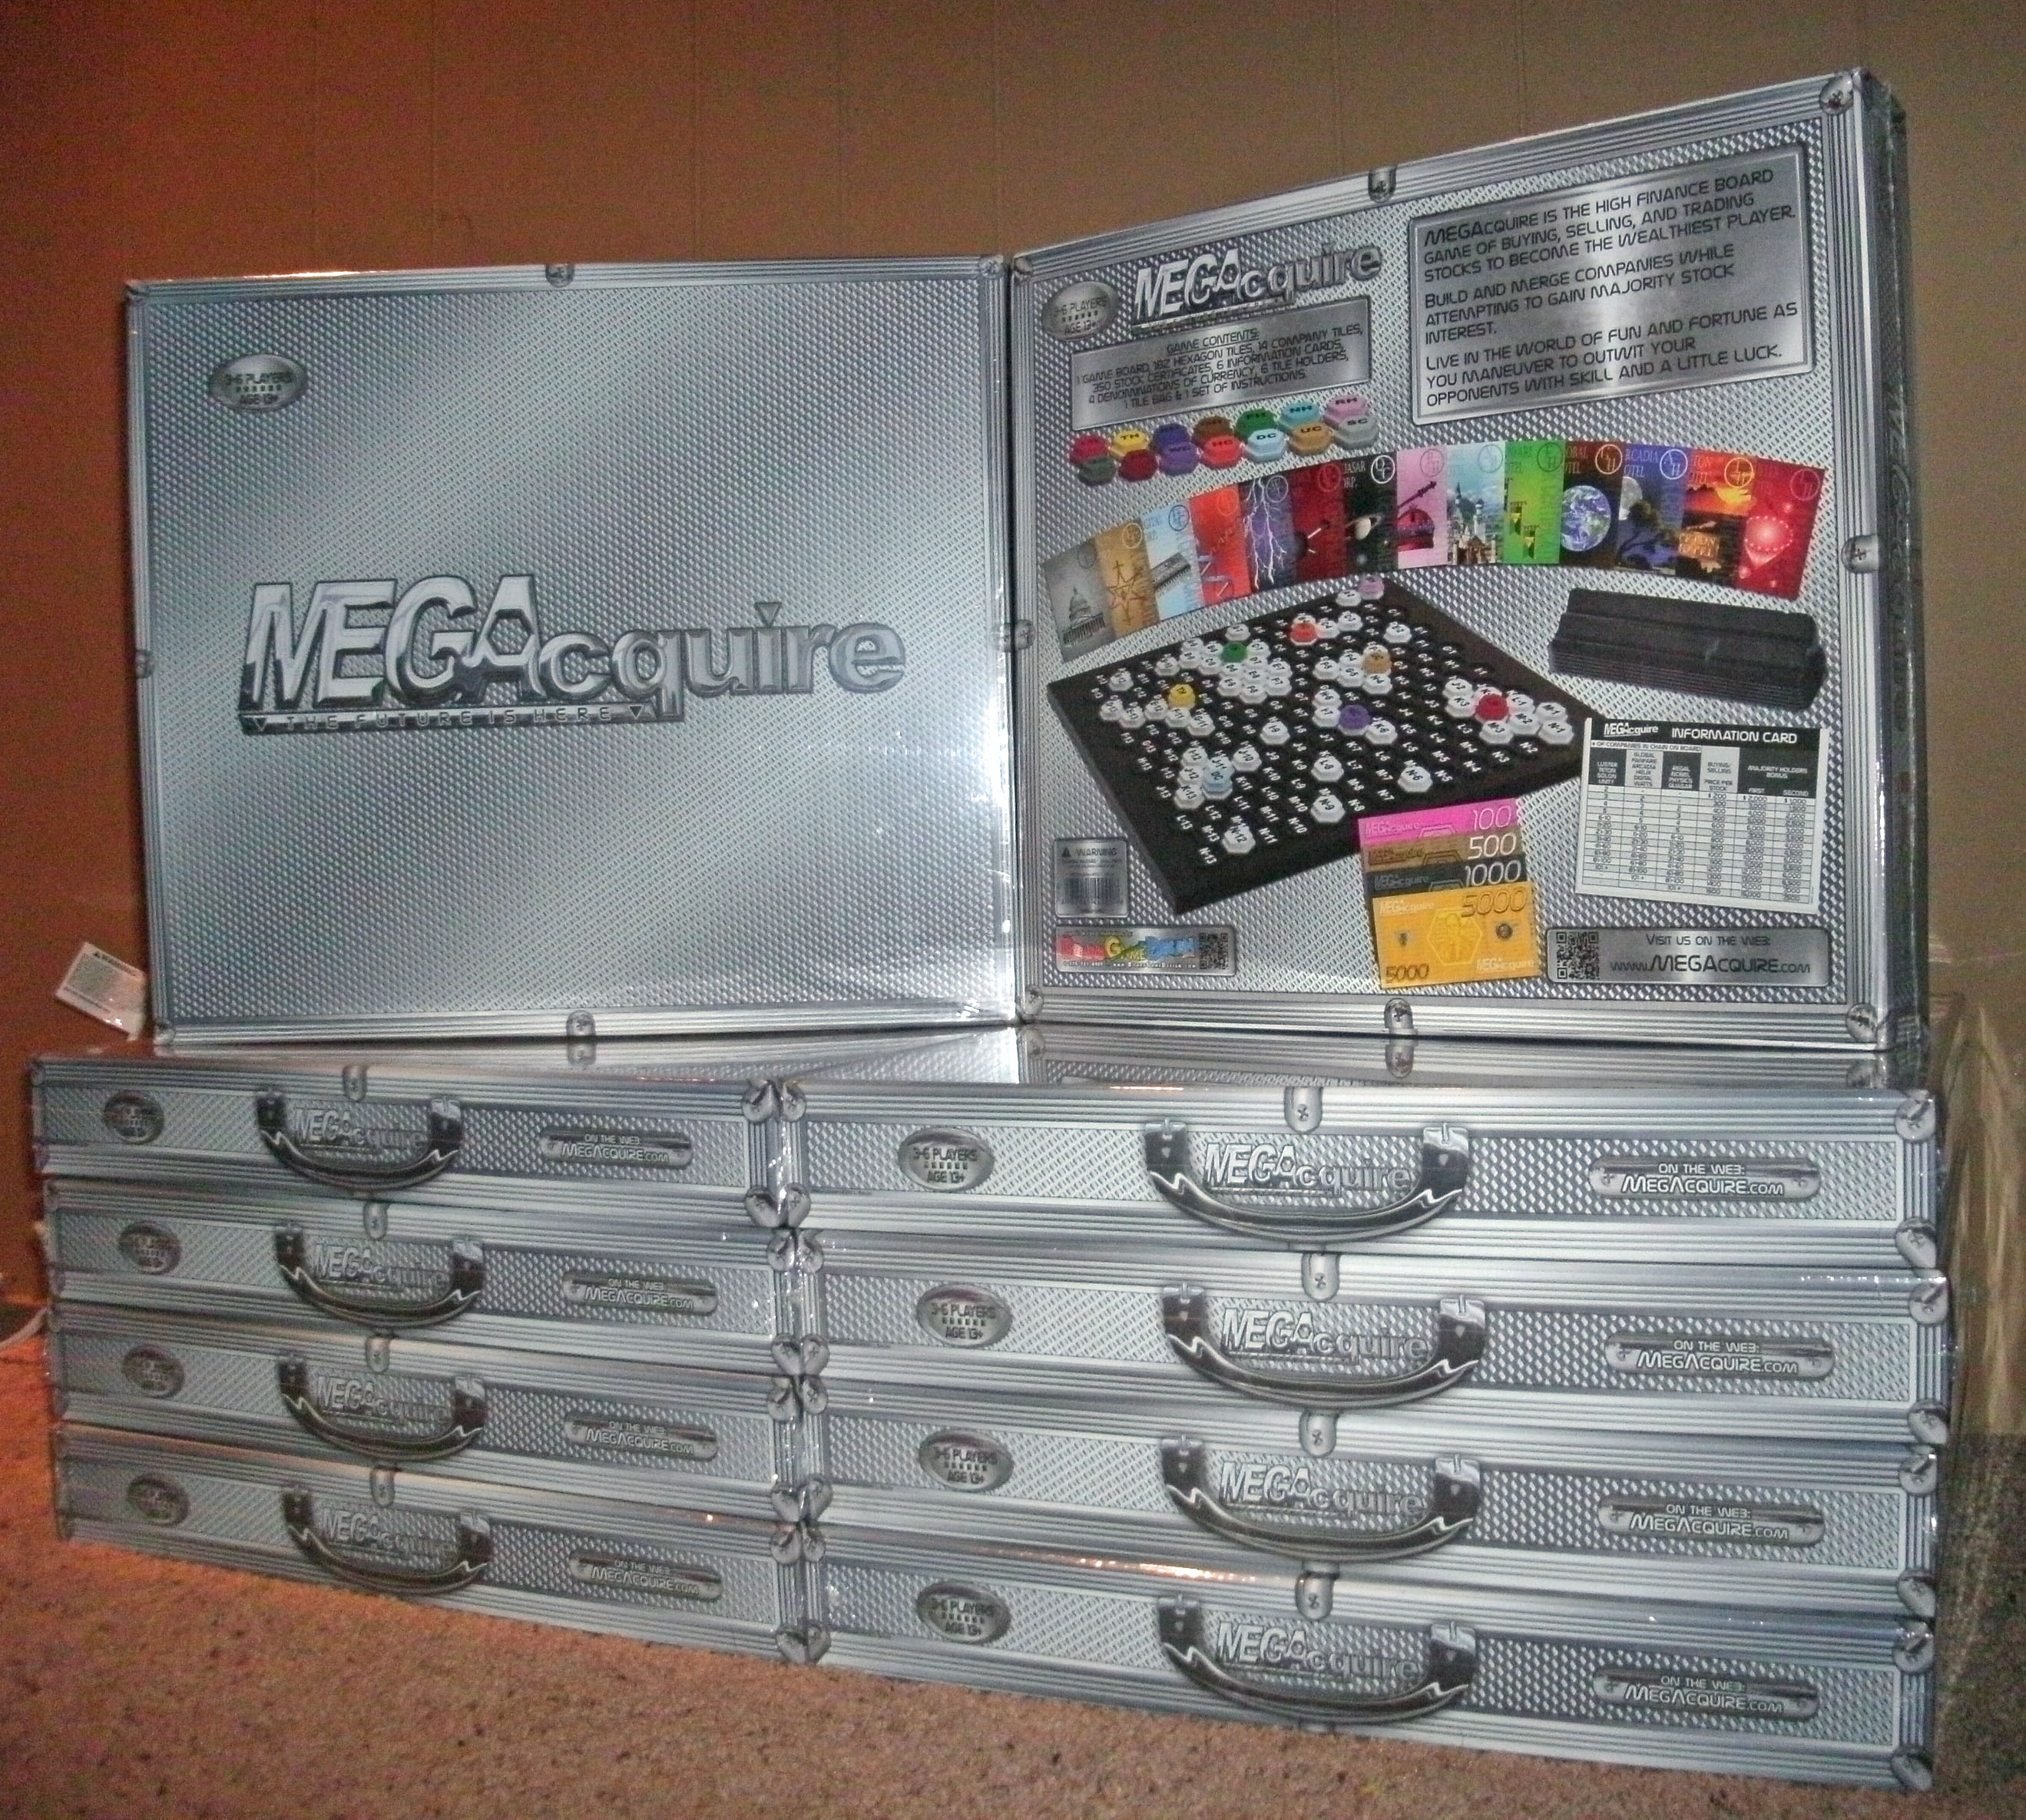 MEGAcquire Game Boxes